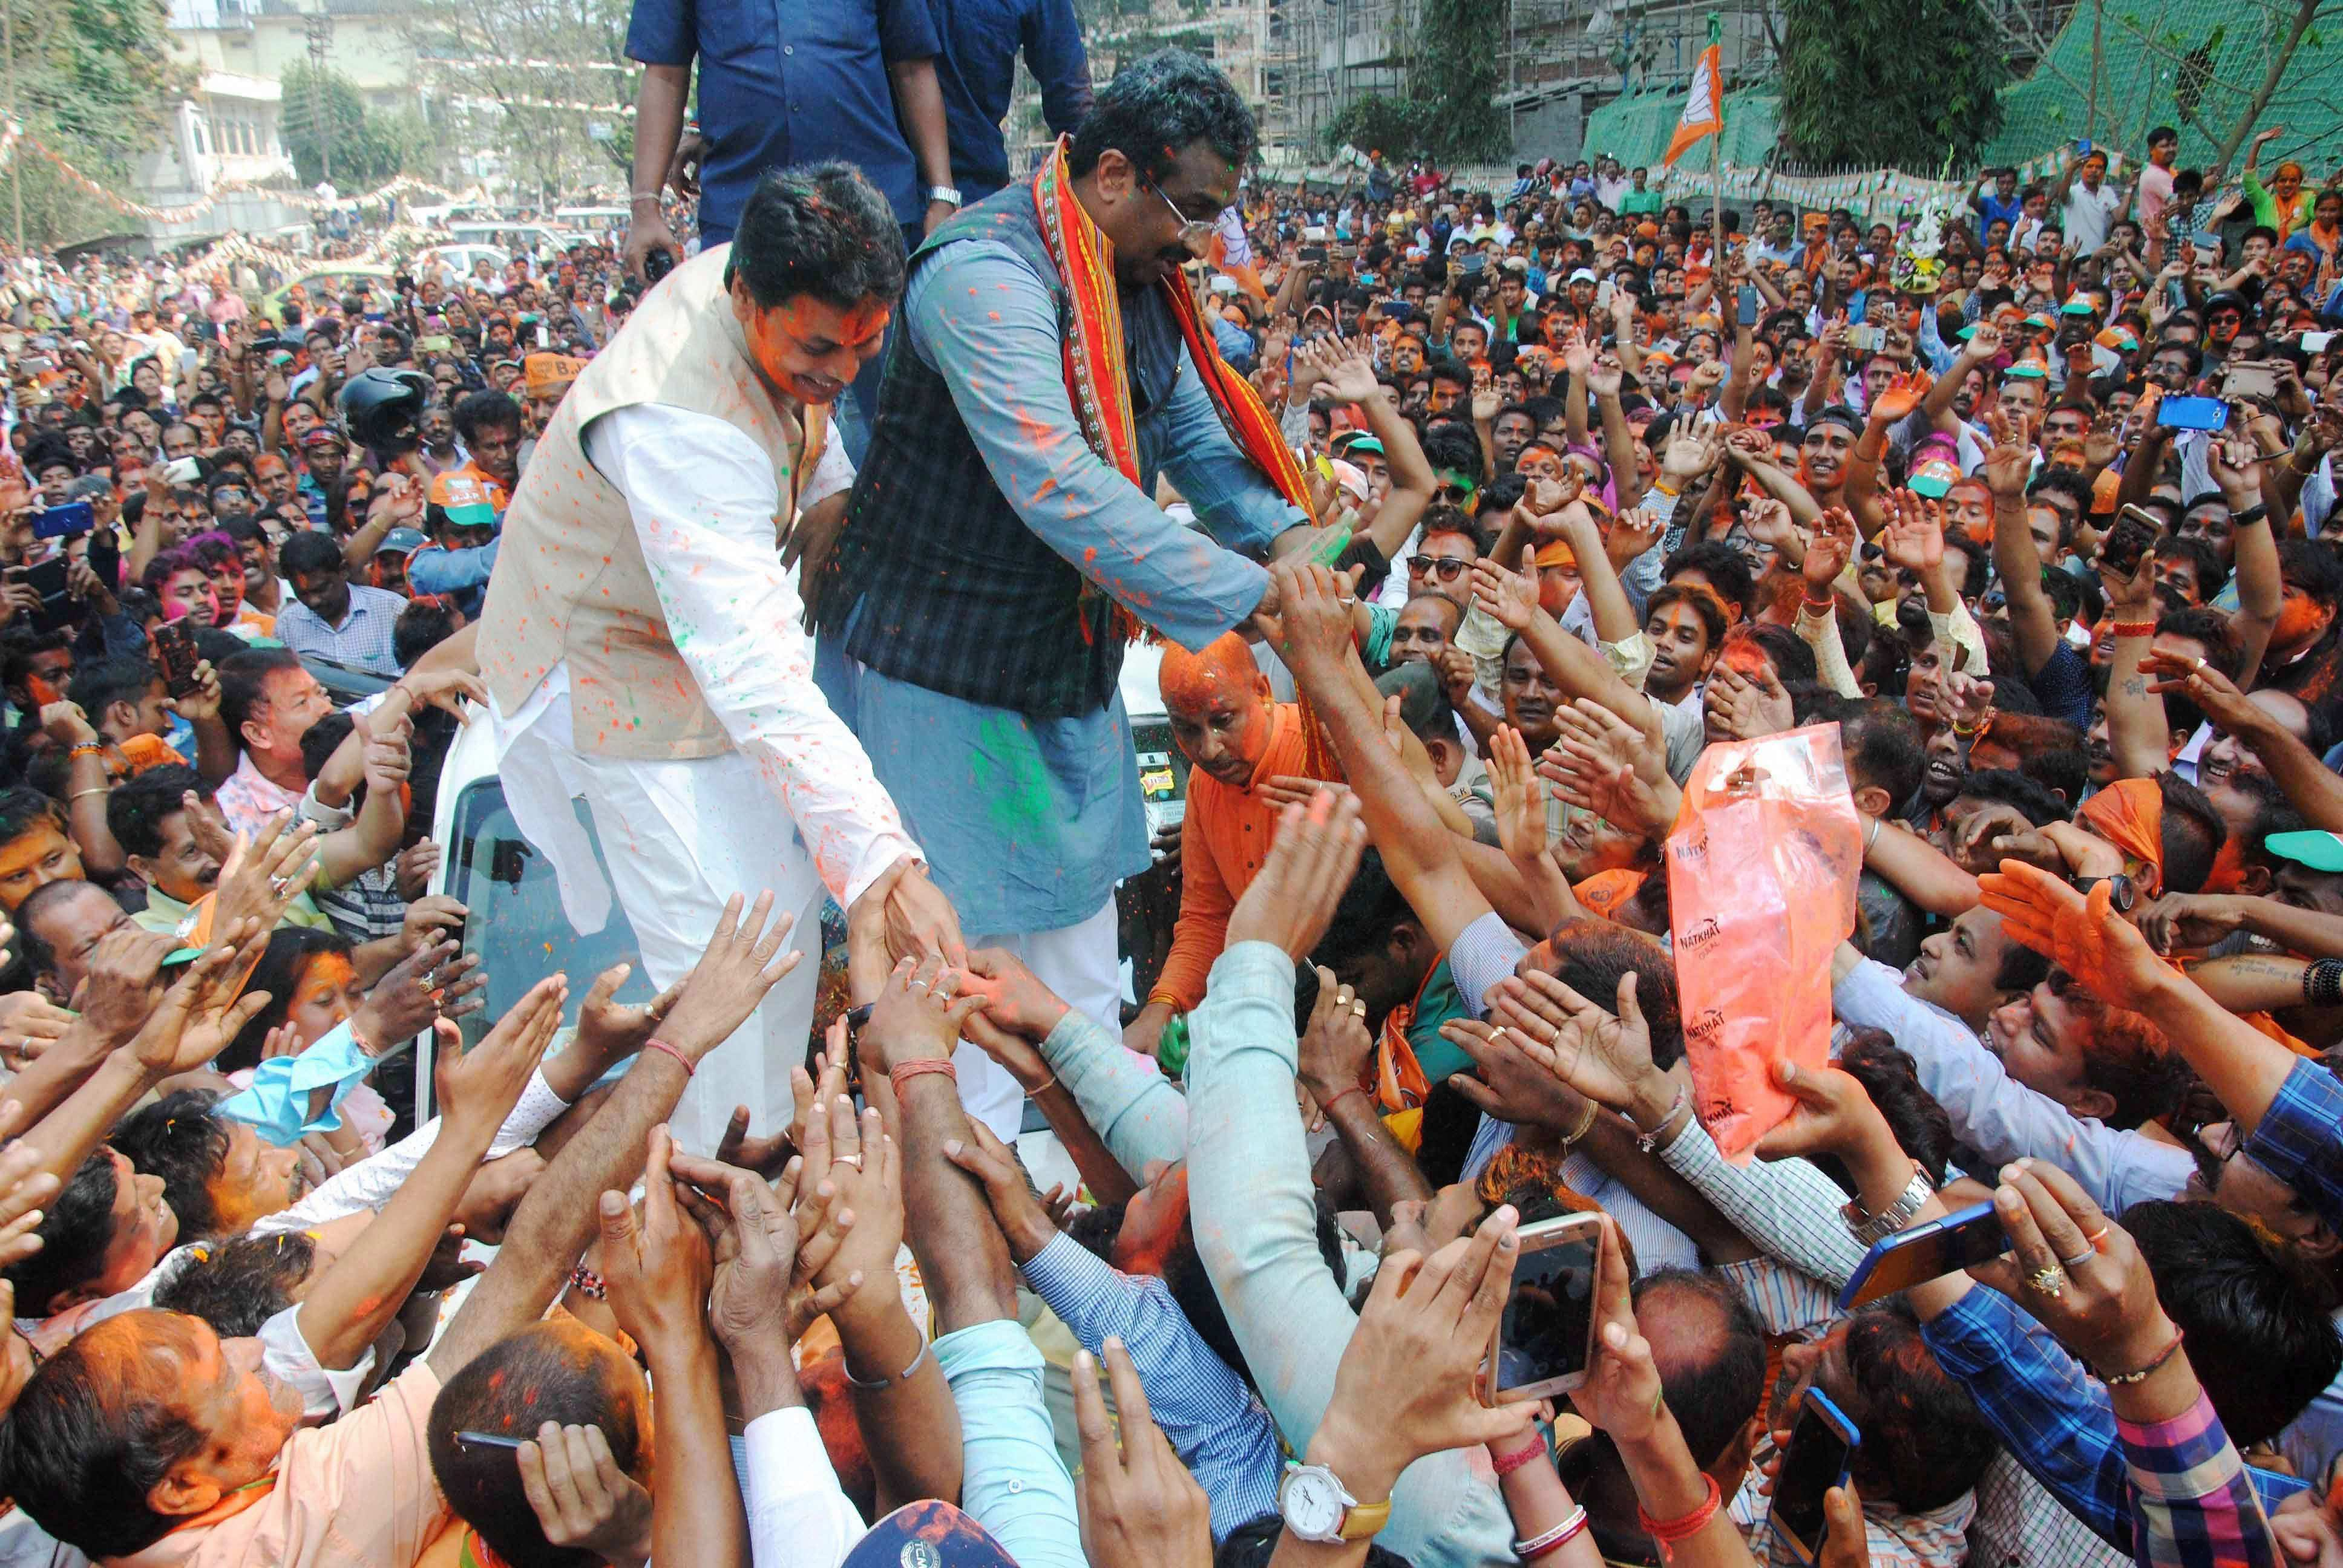 BJP national general secretary Ram Madhav and Tripura BJP chief Biplab Kumar Deb greet the supporters after party's victory in Tripura assembly elections in Agartala on Saturday. BJP's win marks an end to 25 years of CPI(M) rule in the state. Credit: PTI